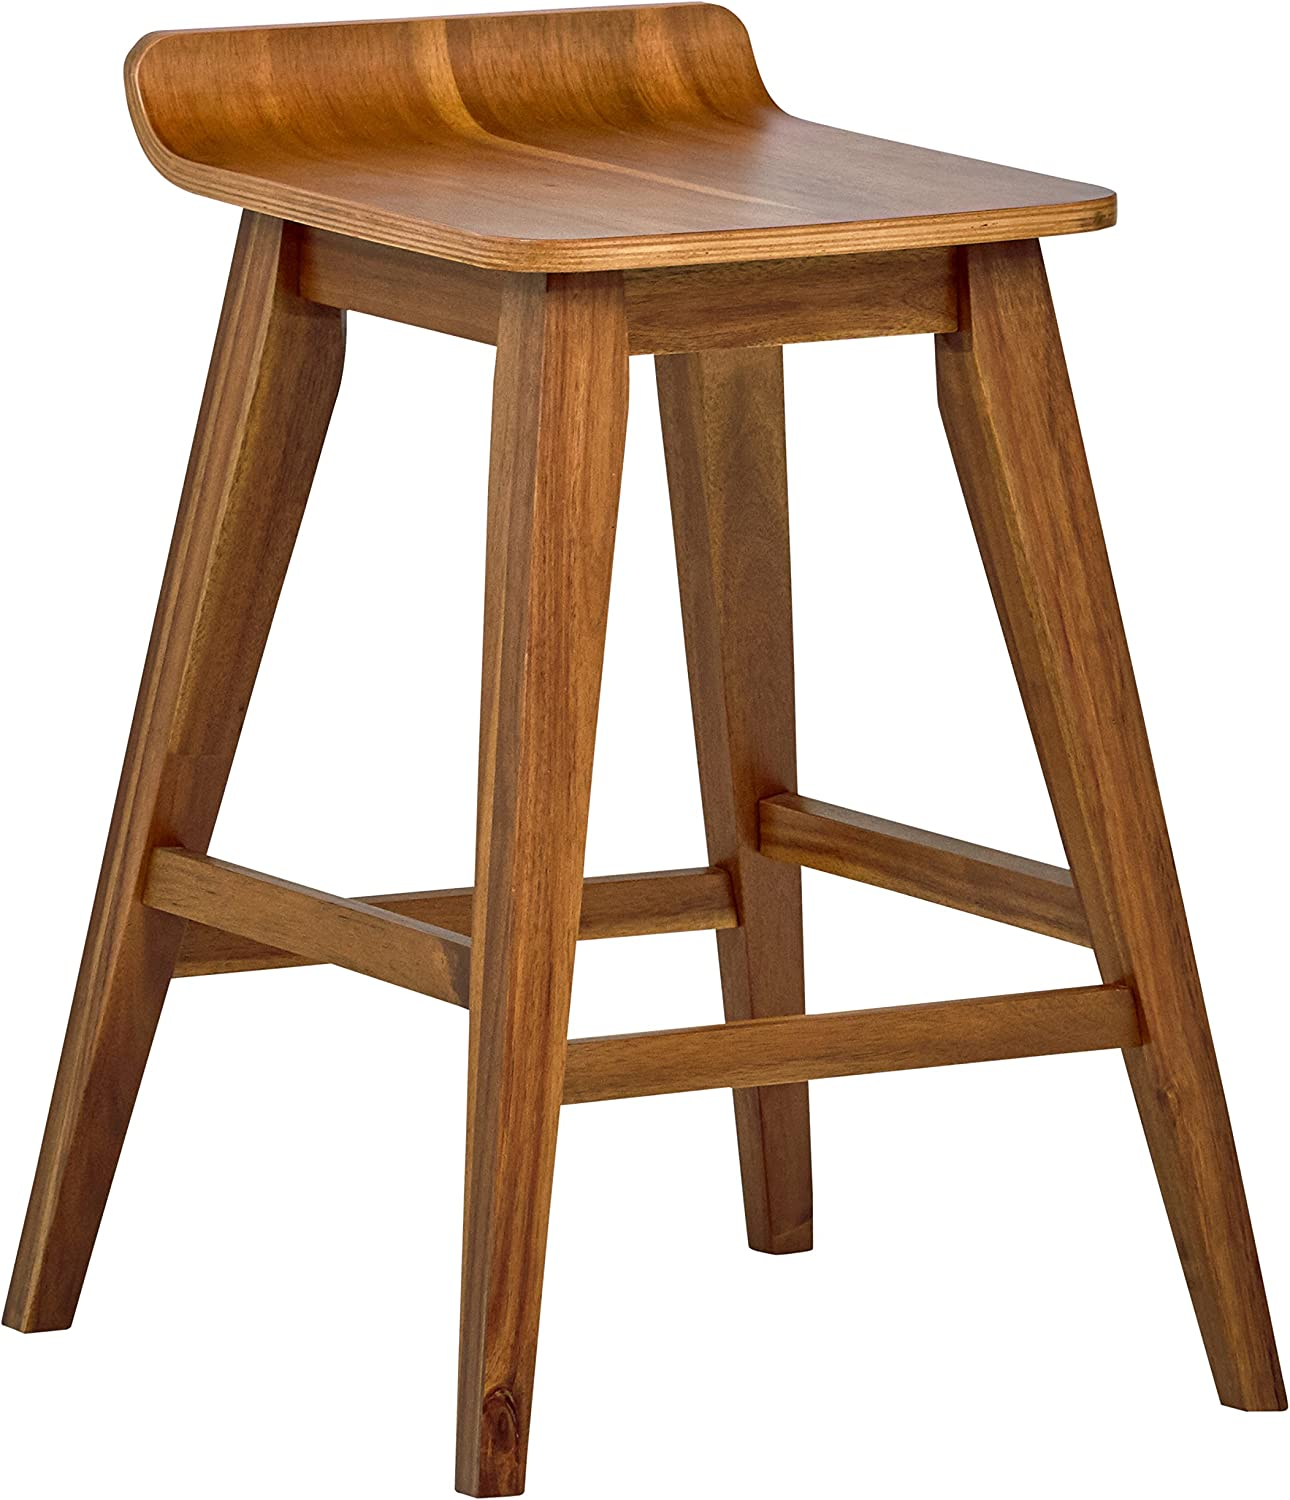 Stone Beam Fremont Rustic Kitchen Counter Saddle Farmhouse Bar Stool, 25.5 Inch Height, Natural Wood